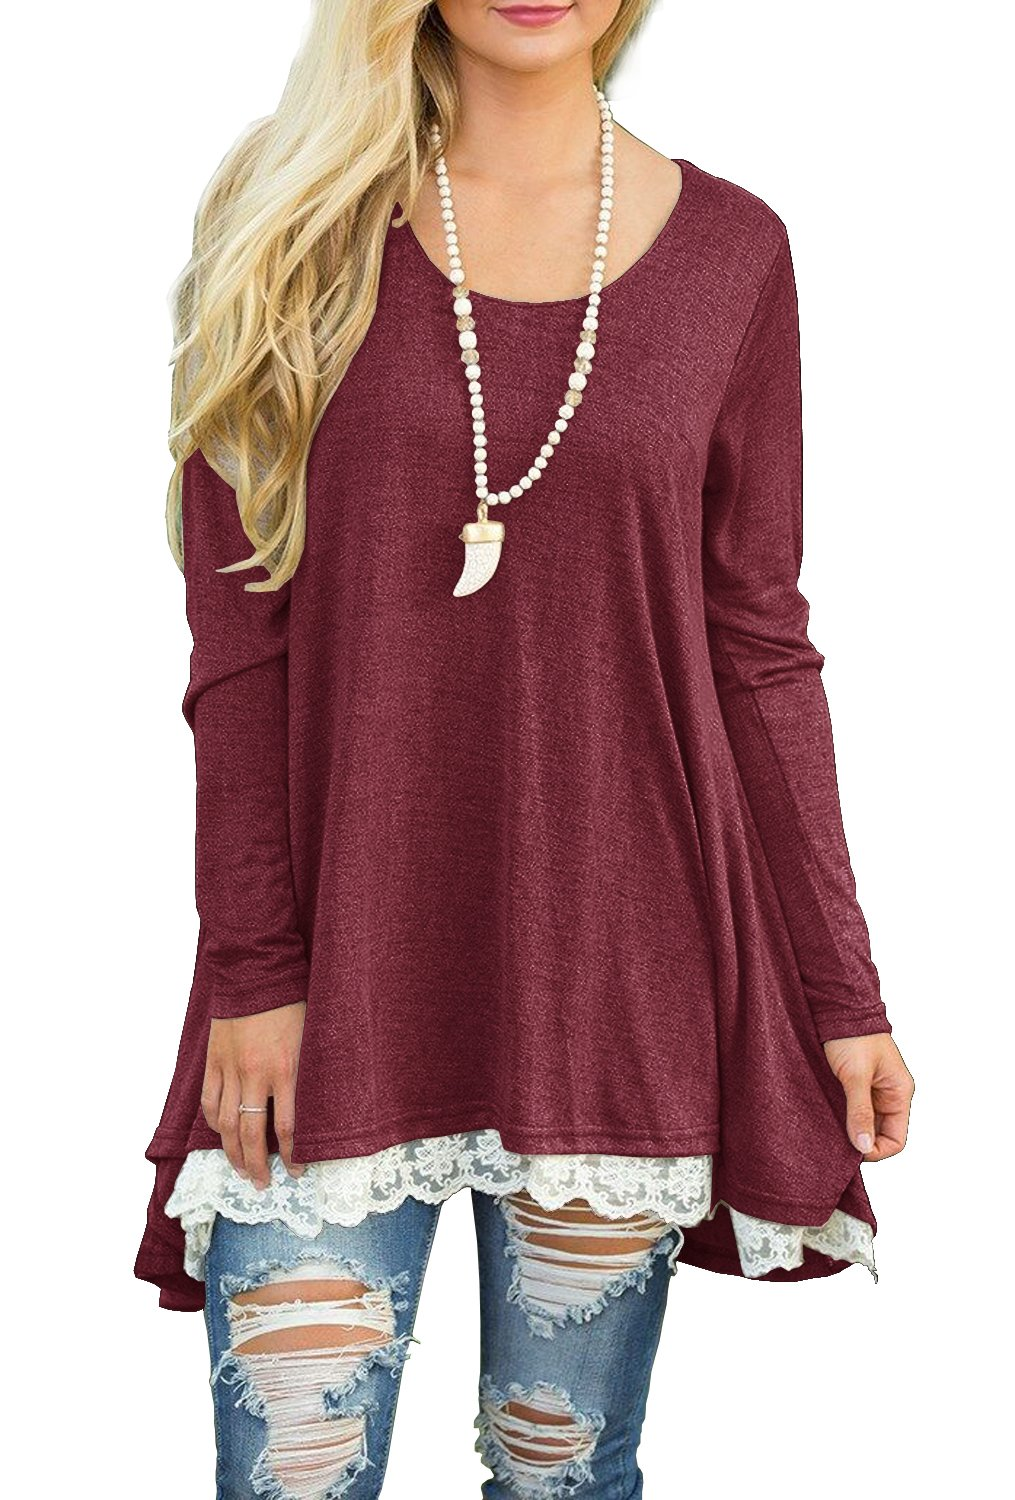 QIXING Women's Lace Long Sleeve Tunic Top Blouse Wine Red-S